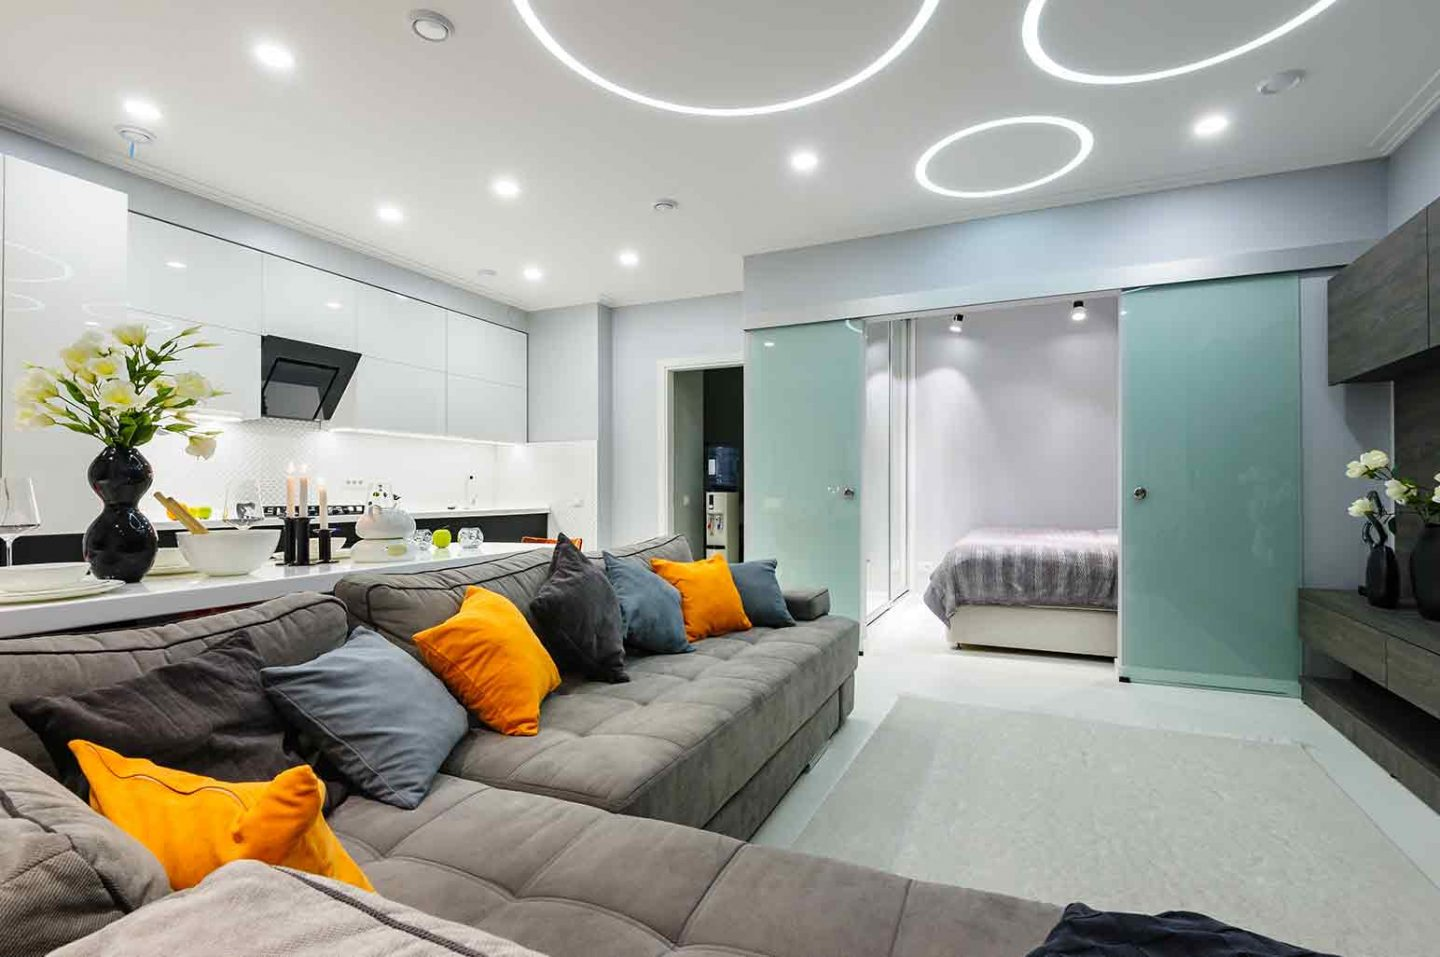 Things to Consider When Buying LED Lights